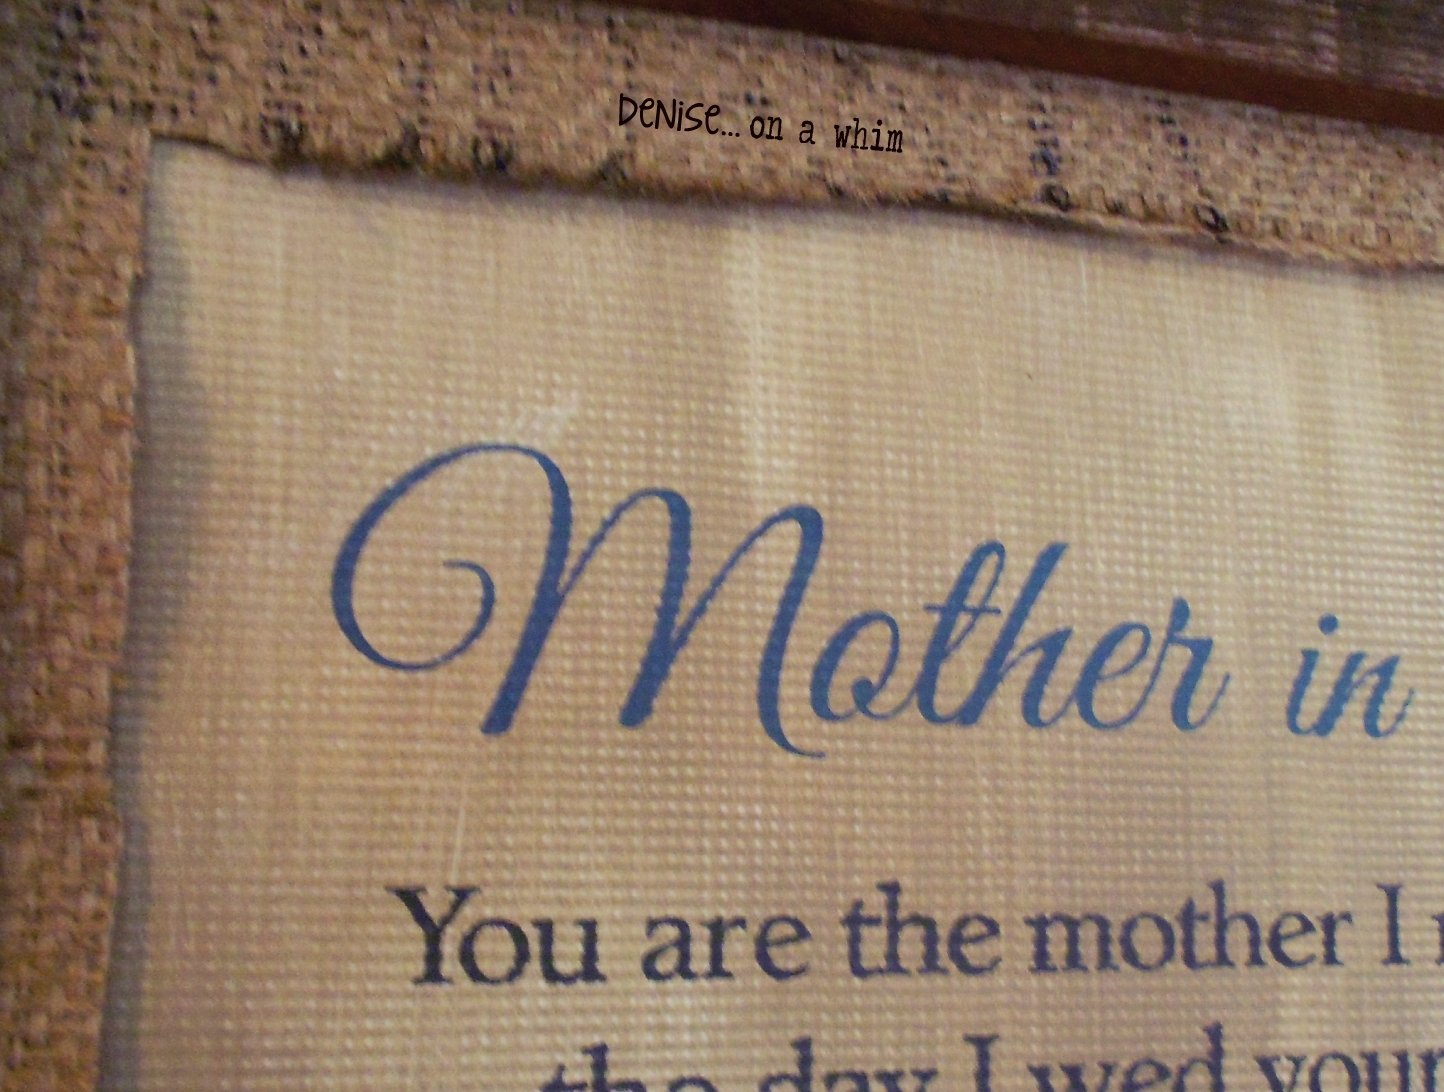 deniseon a whim: a custom mother's day gift